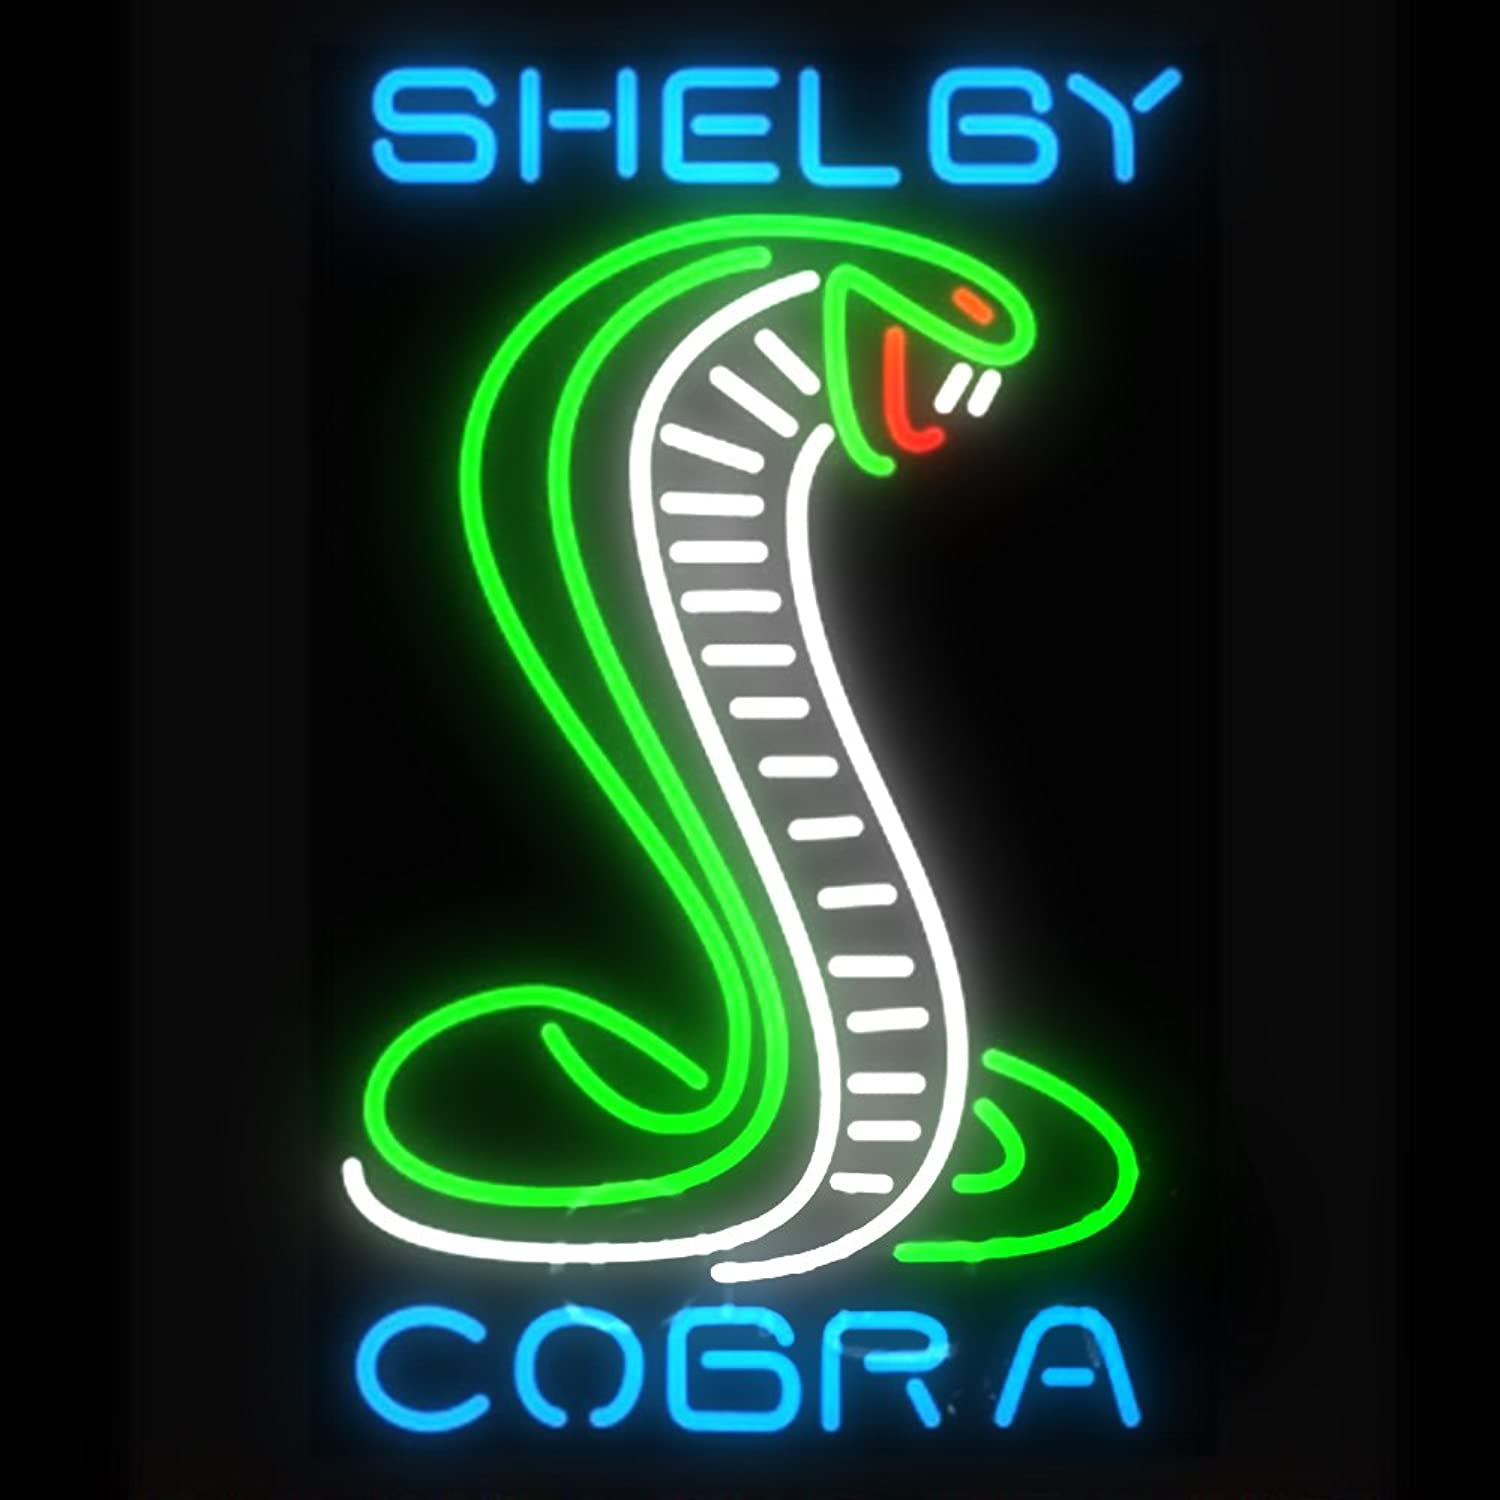 Green Shelby Cobra Beer Bar Pub Store Party Room Wall Windows Display Neon Signs 19x15